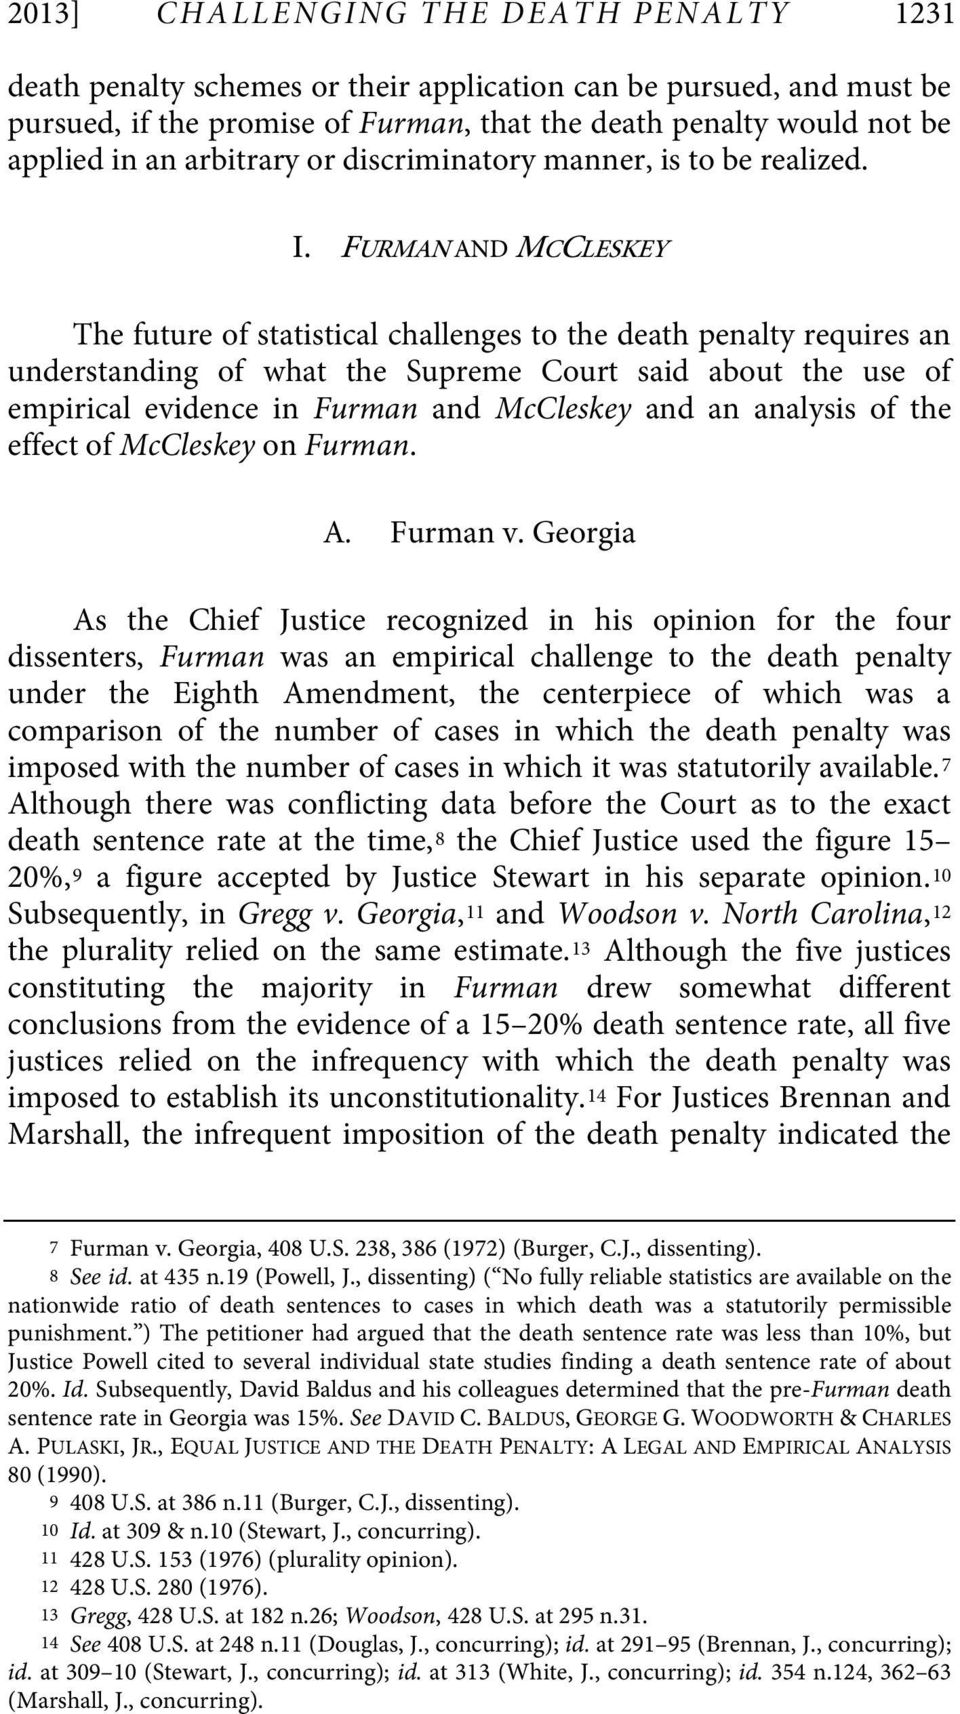 FURMAN AND MCCLESKEY The future of statistical challenges to the death penalty requires an understanding of what the Supreme Court said about the use of empirical evidence in Furman and McCleskey and